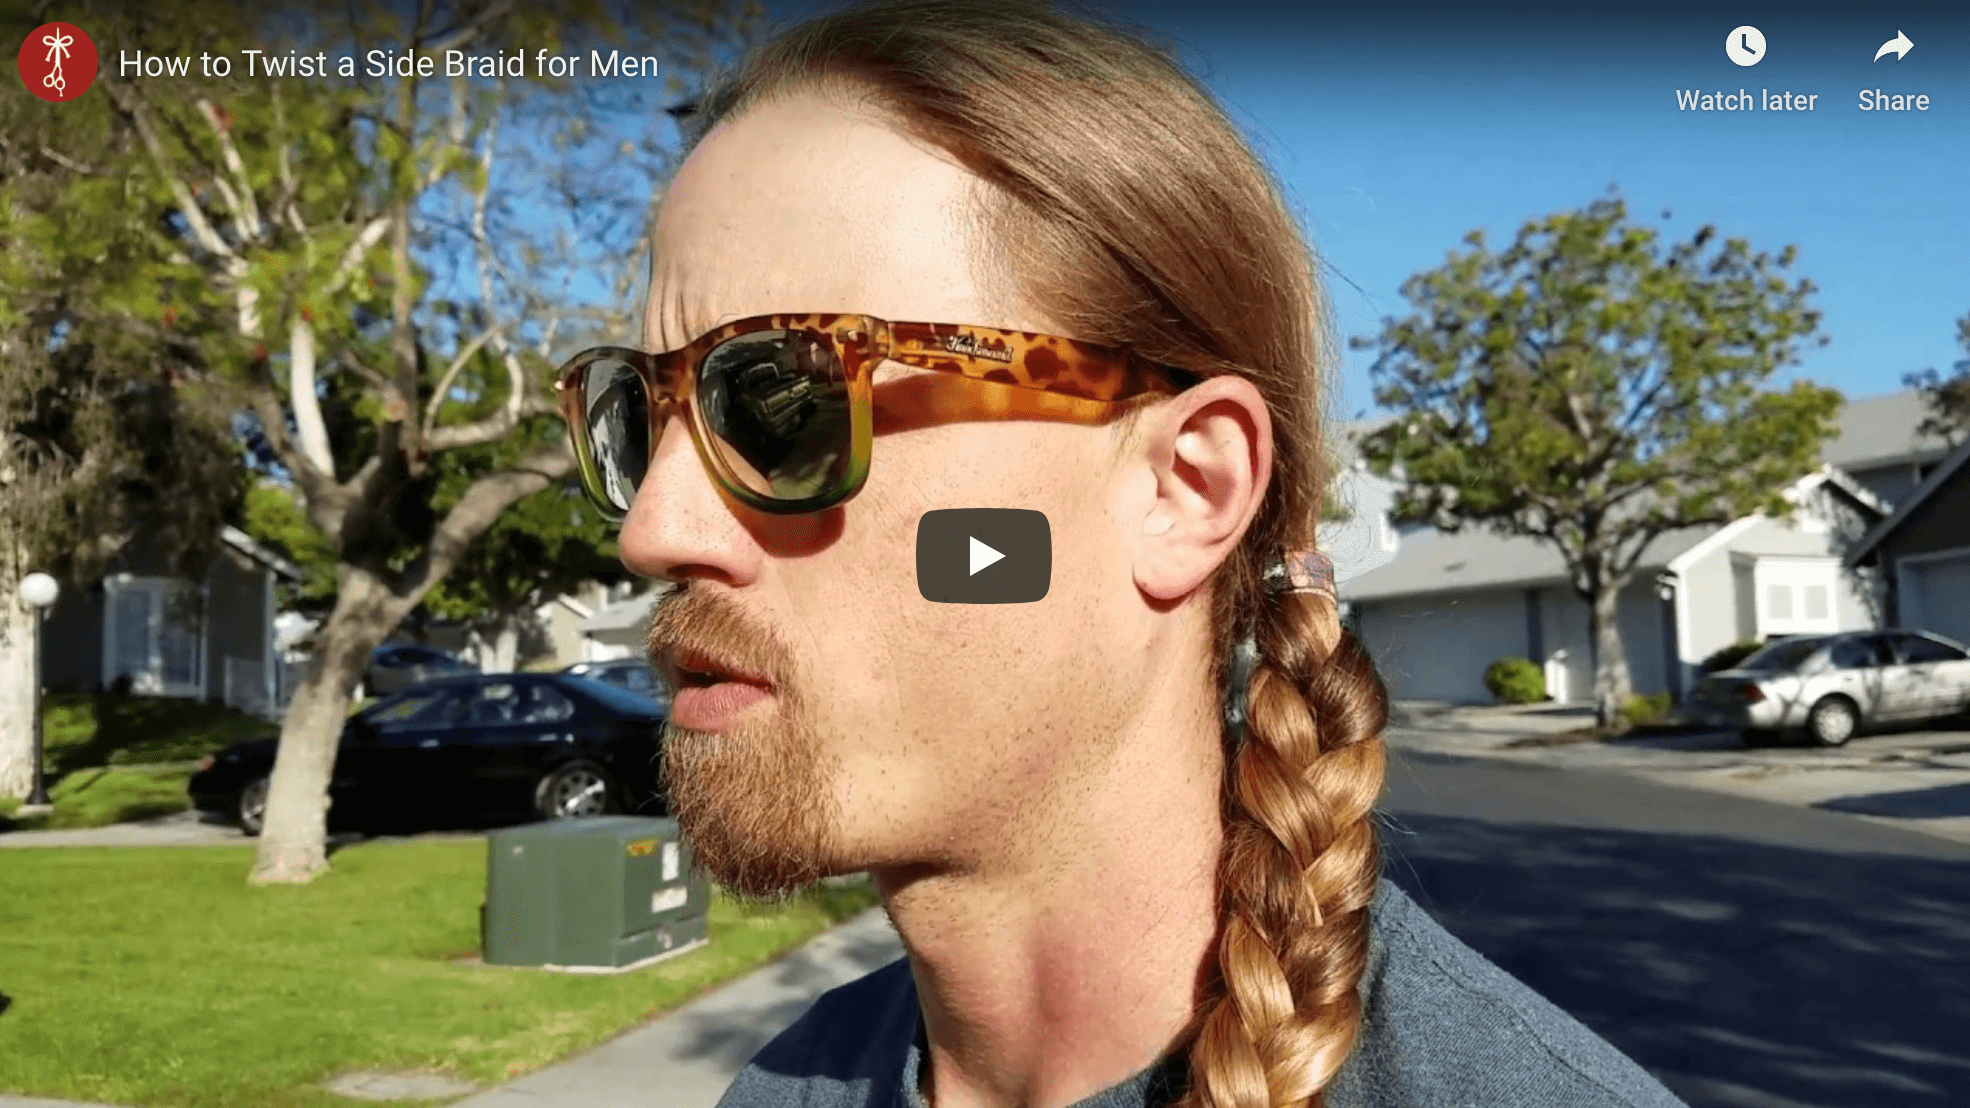 How to Twist a Side Braid for Men